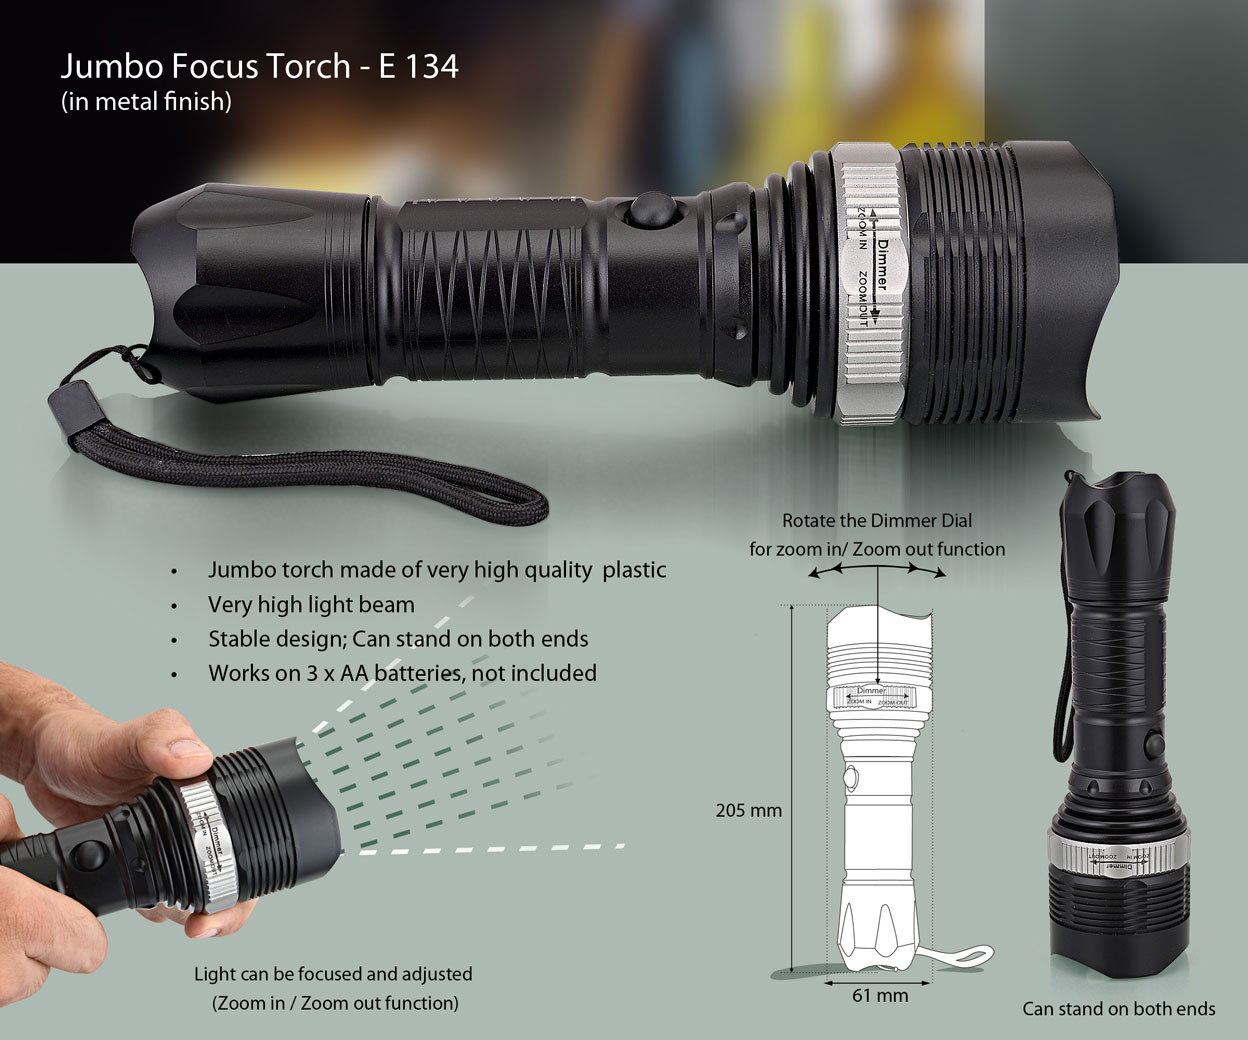 E134 - Jumbo Focus Torch (with zoom in/out function)